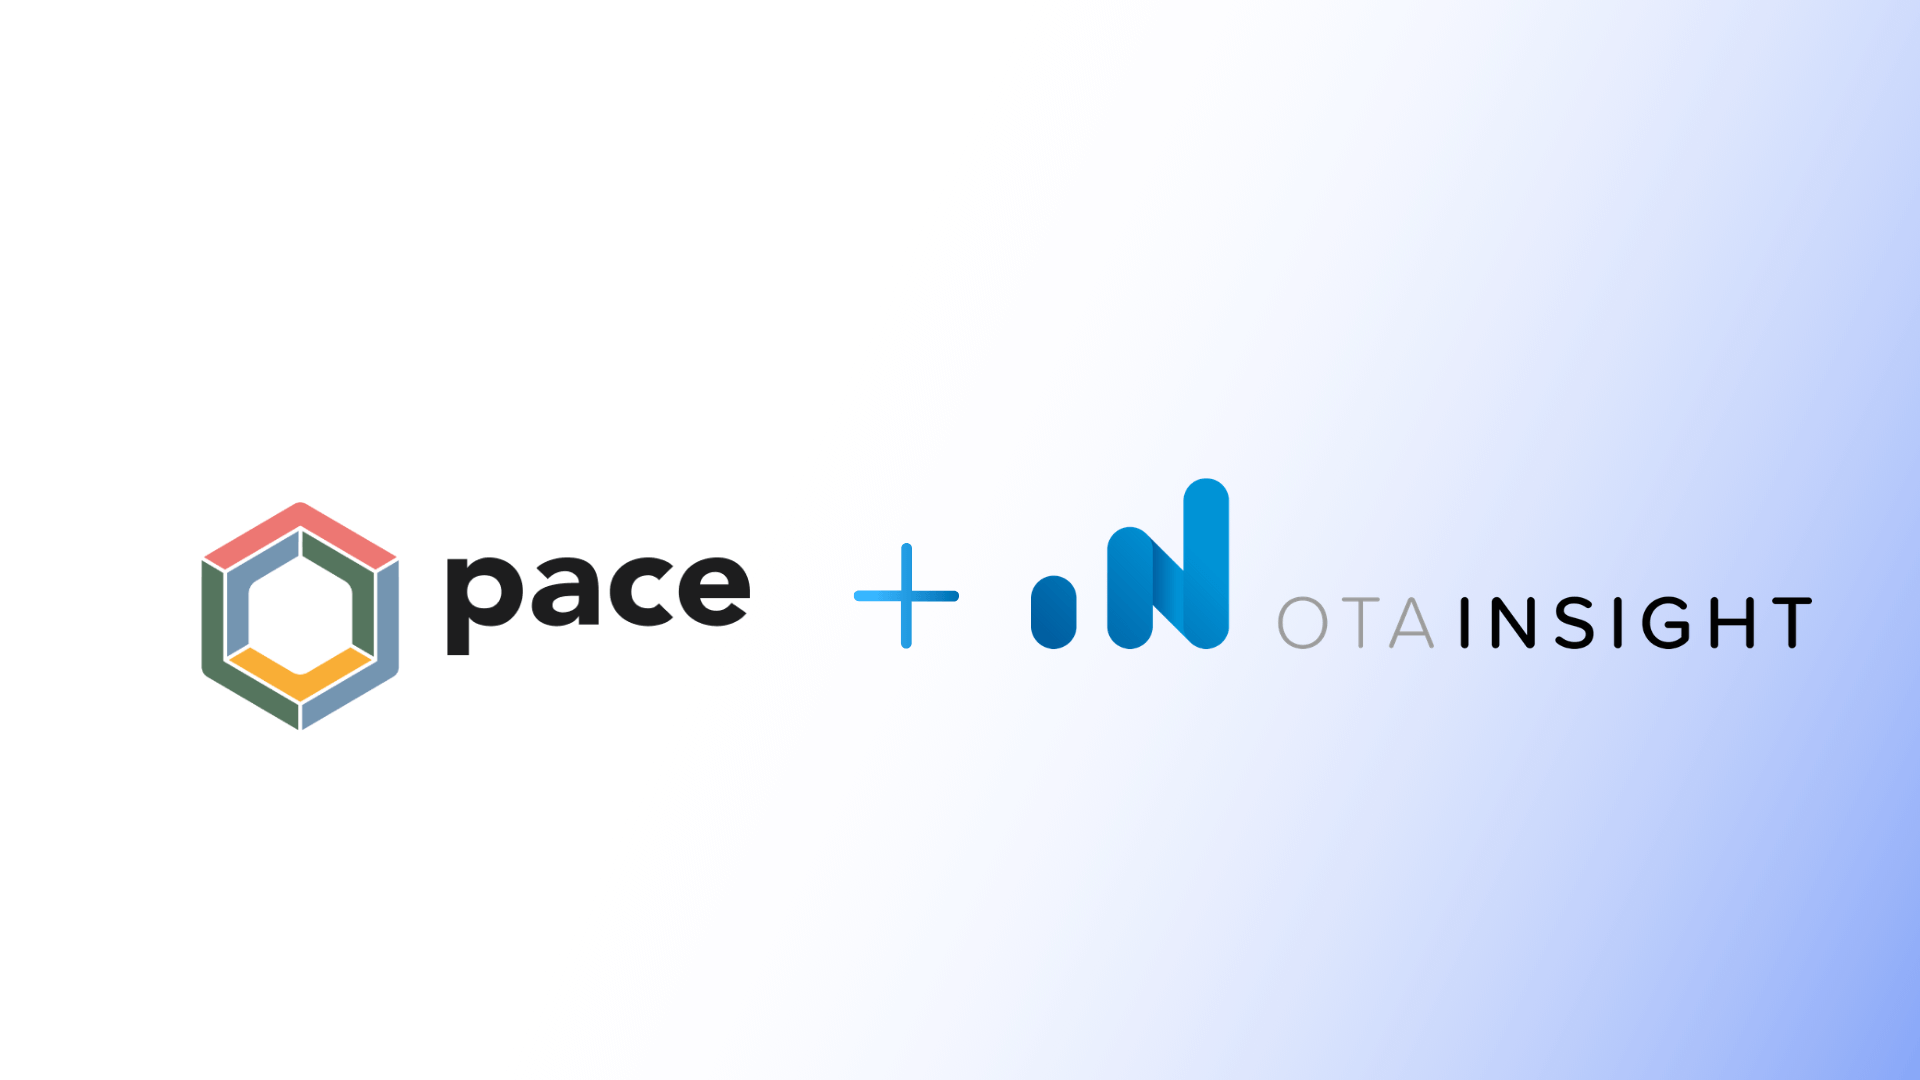 pace and ota insight logos